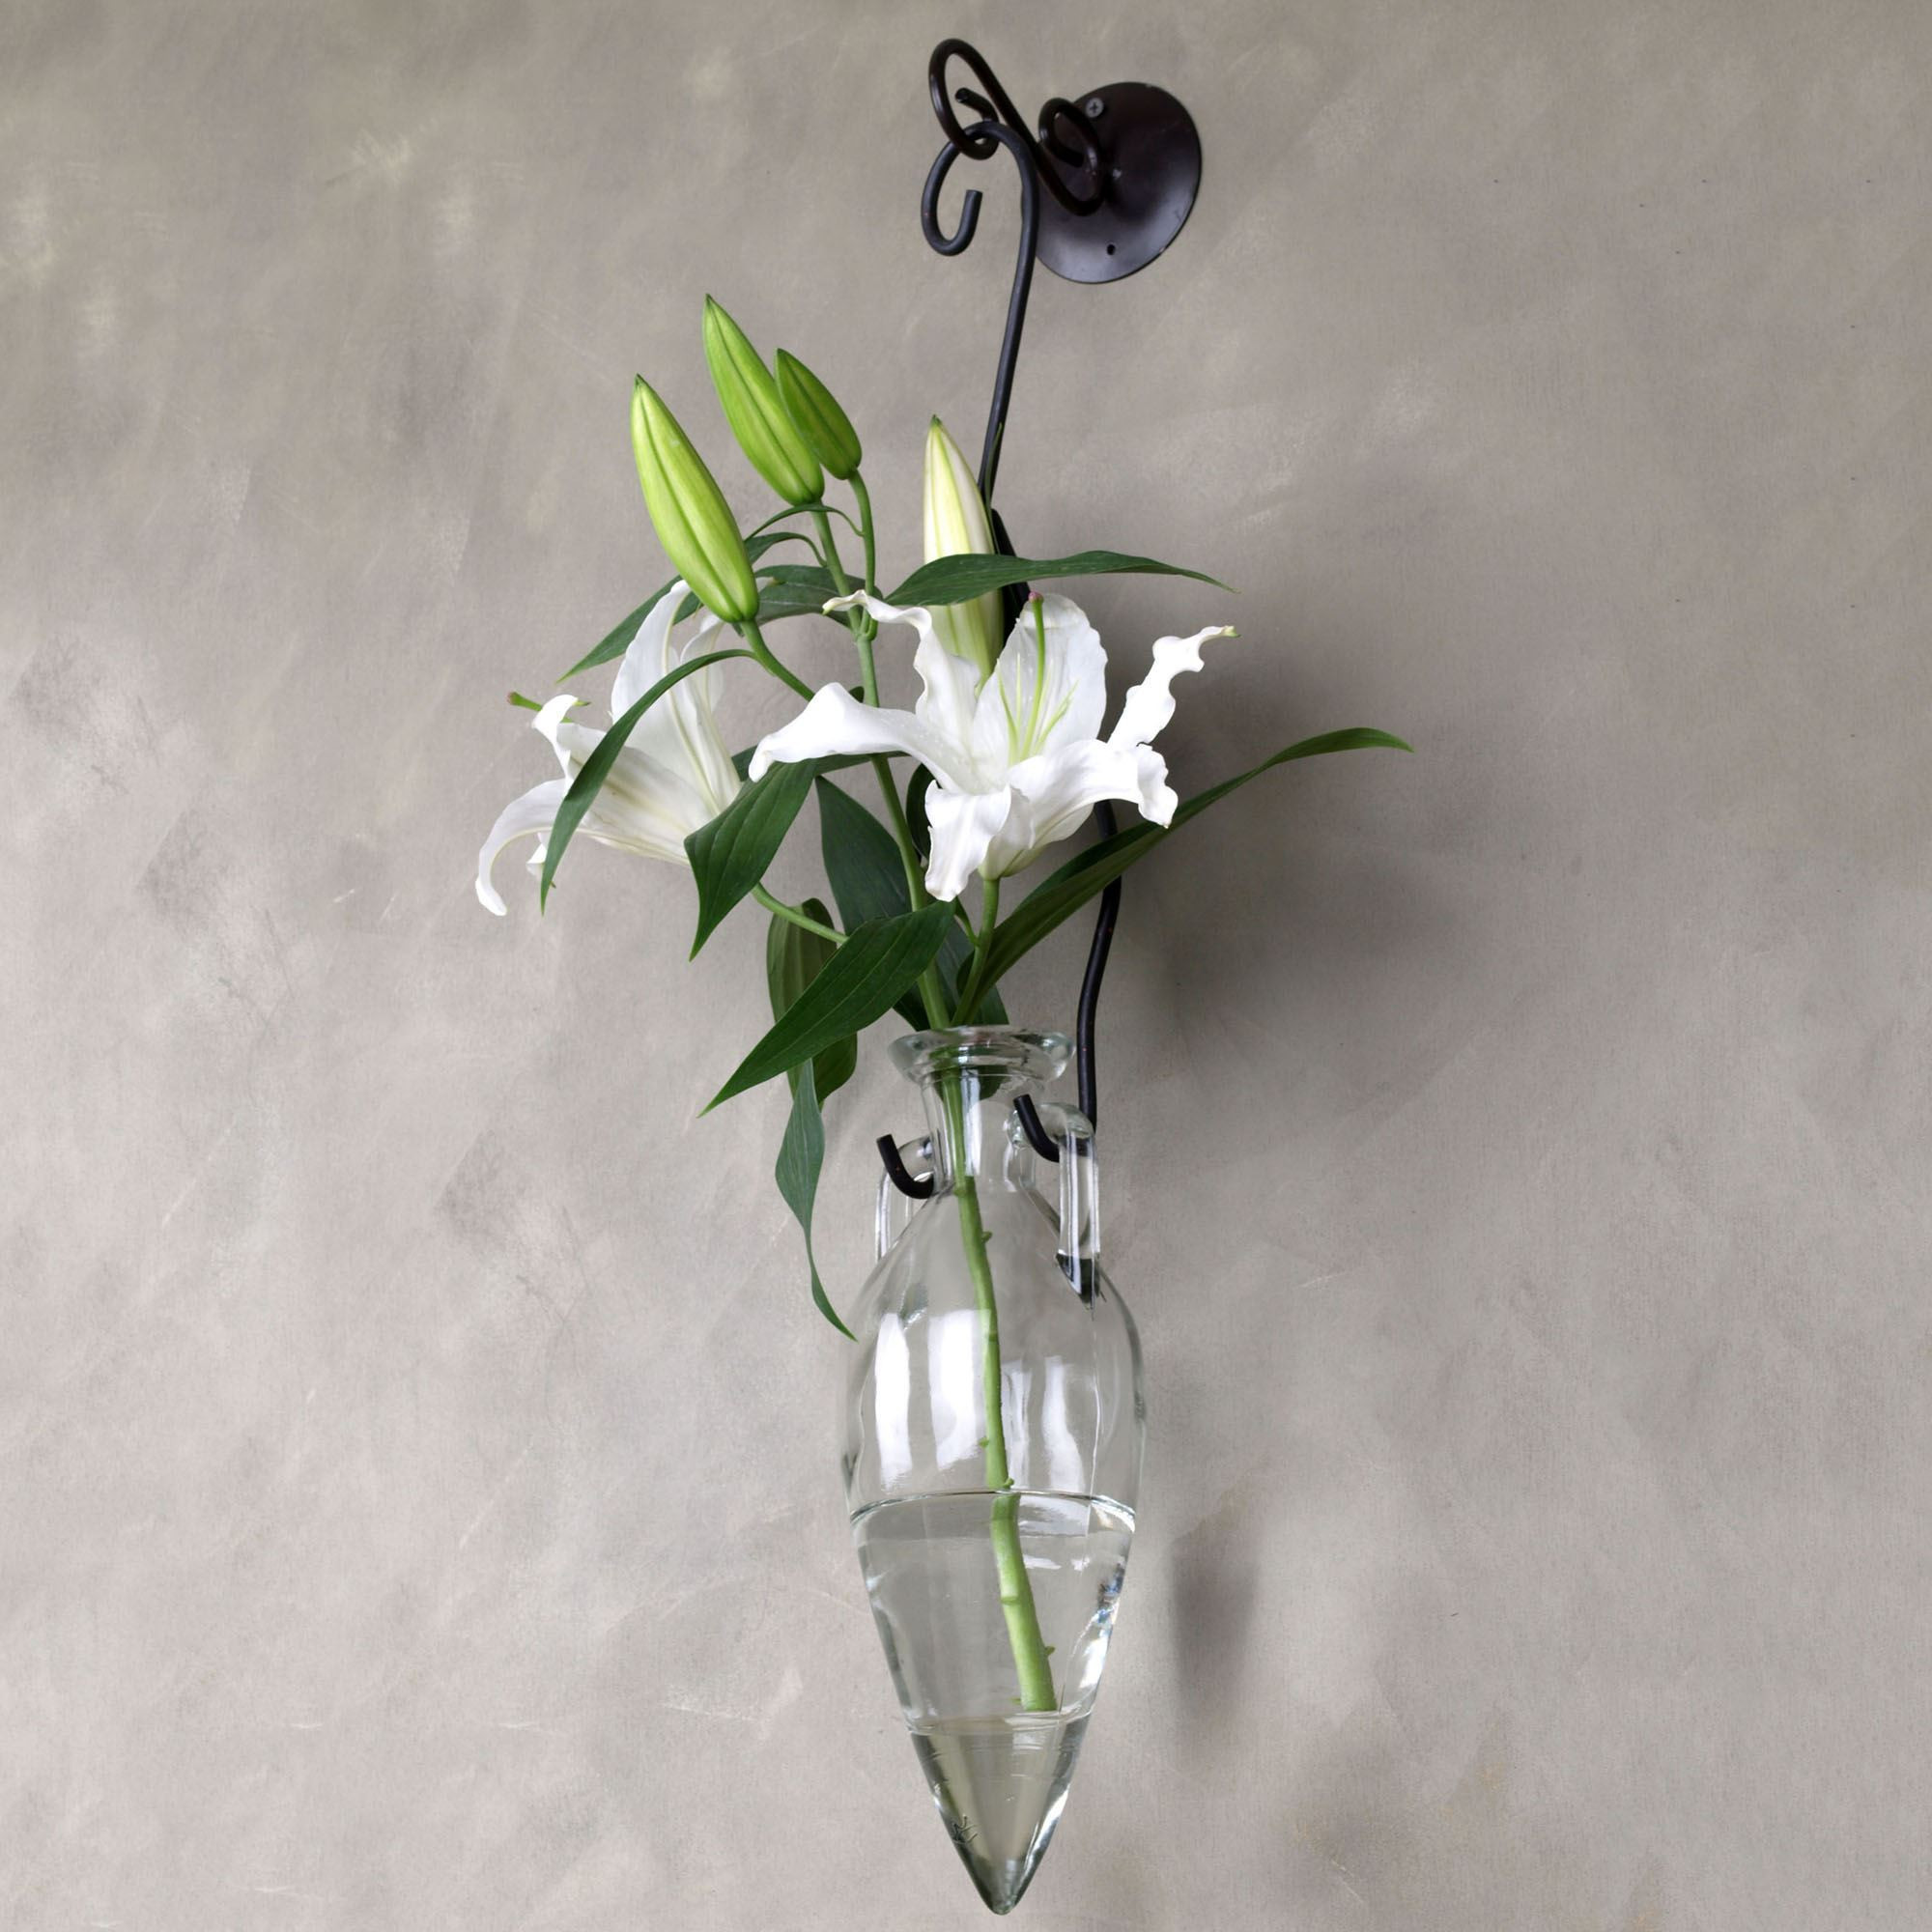 H Vases Wall Hanging Flower Vase Newspaper I 0d Scheme Wall Scheme Wall Flower Holders